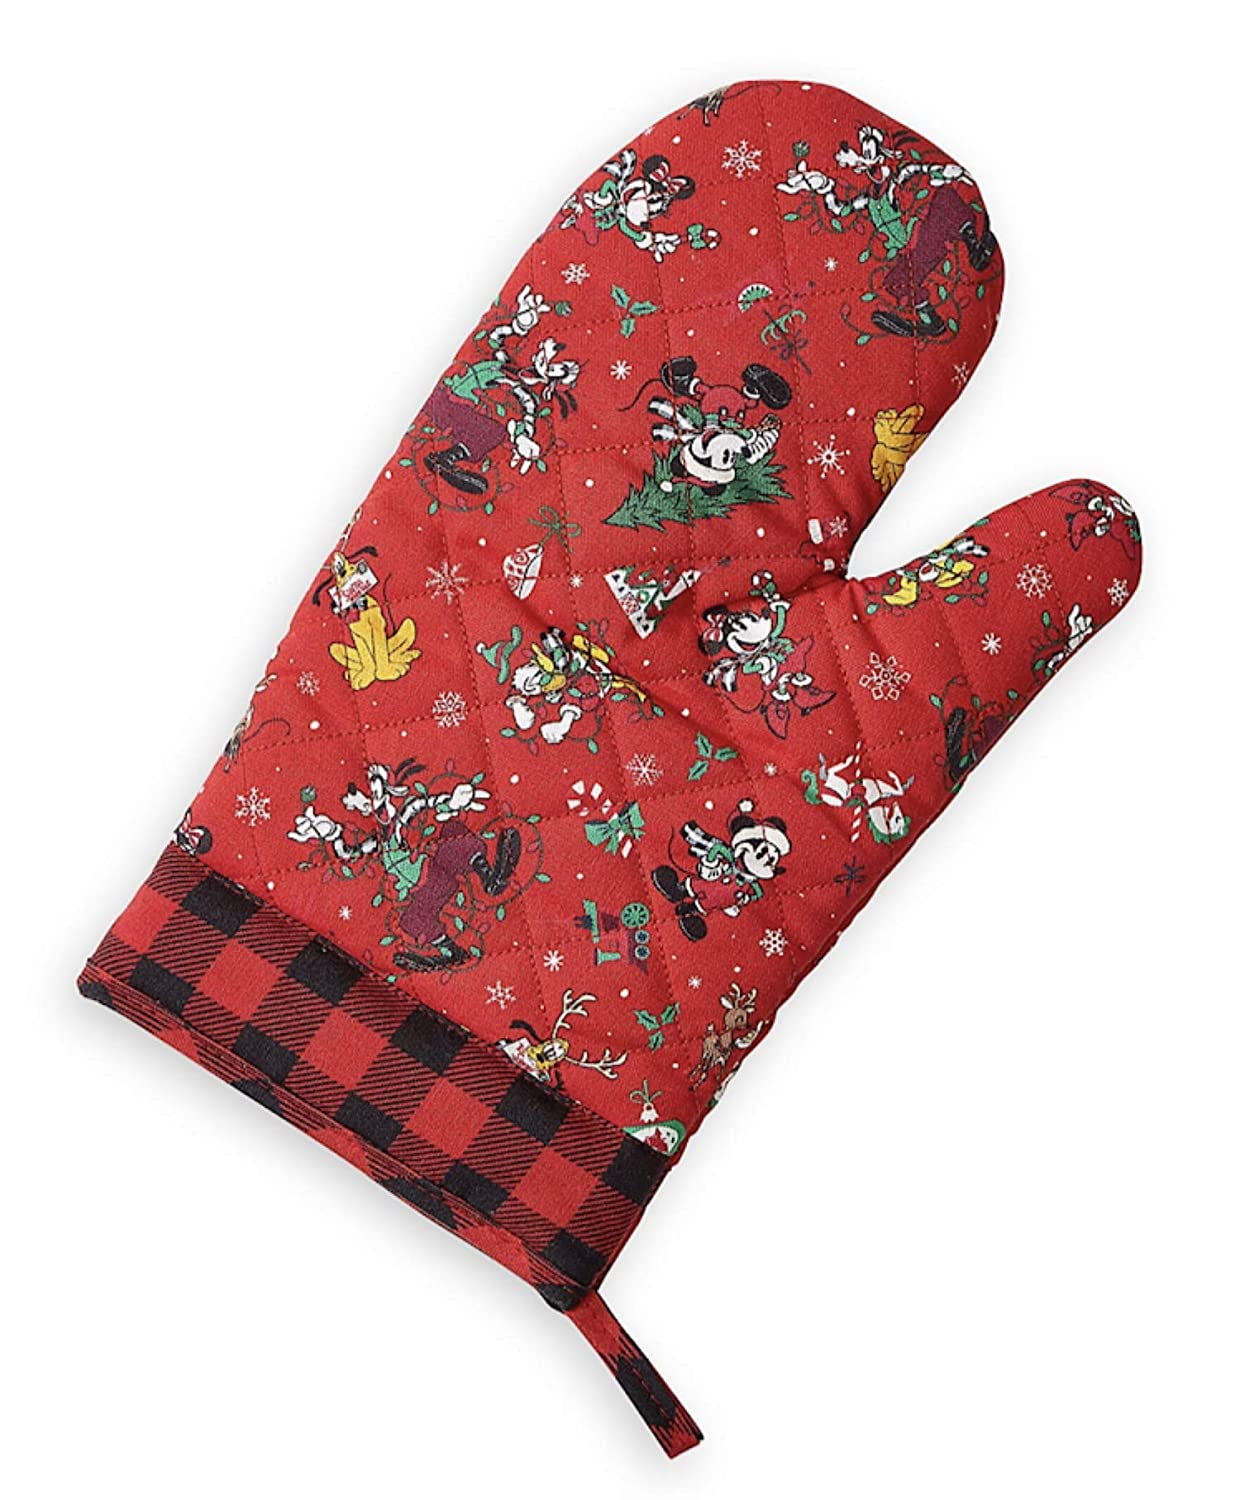 Dsney Parks Mickey Mouse and Friends Christmas Oven Mitt